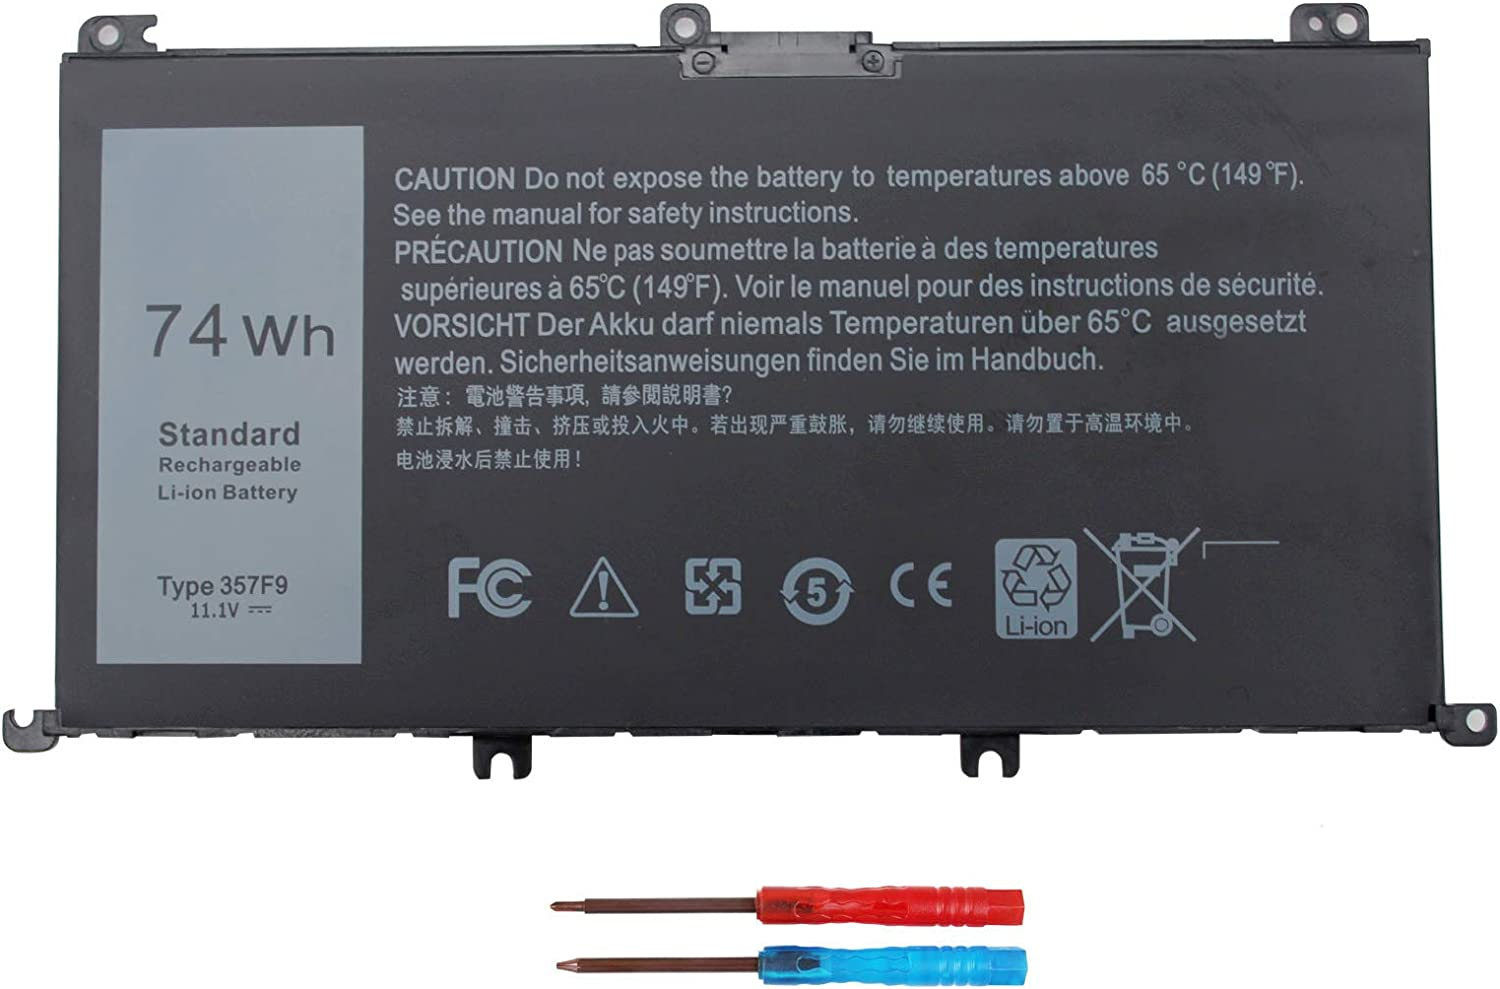 Shareway 357F9 Laptop Battery Compatible with Dell Inspiron 7000 Dump 15 7557 7559 7566 7567 7759 5576 5577 INS15PD Series 0GFJ6 71JF4 071JF4 11.1V